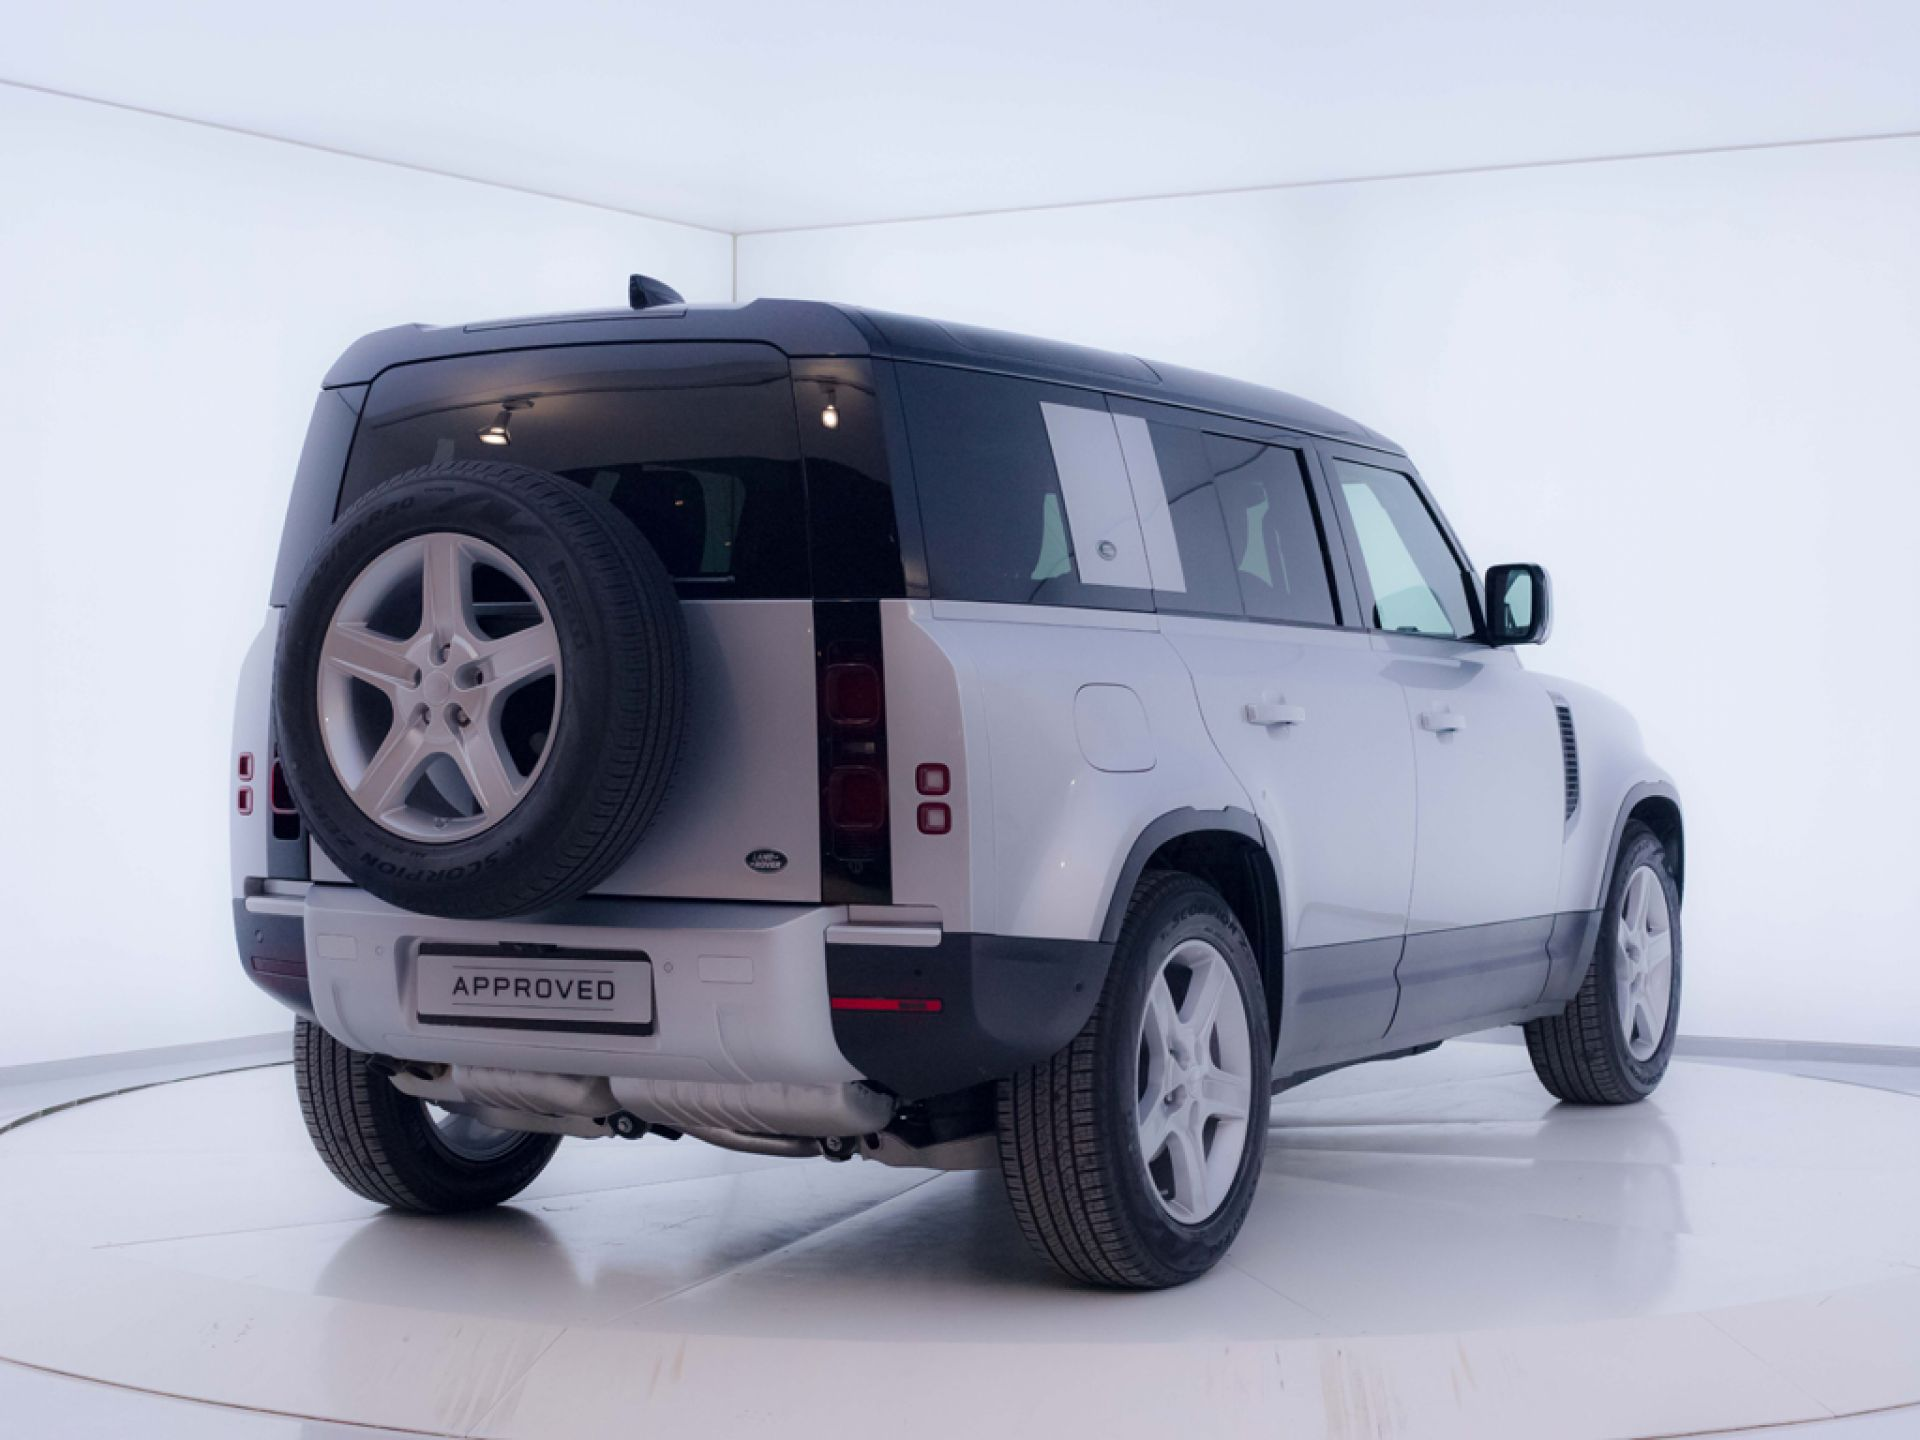 Land Rover Defender 2.0 D240 SD4 S 90 Auto 4WD